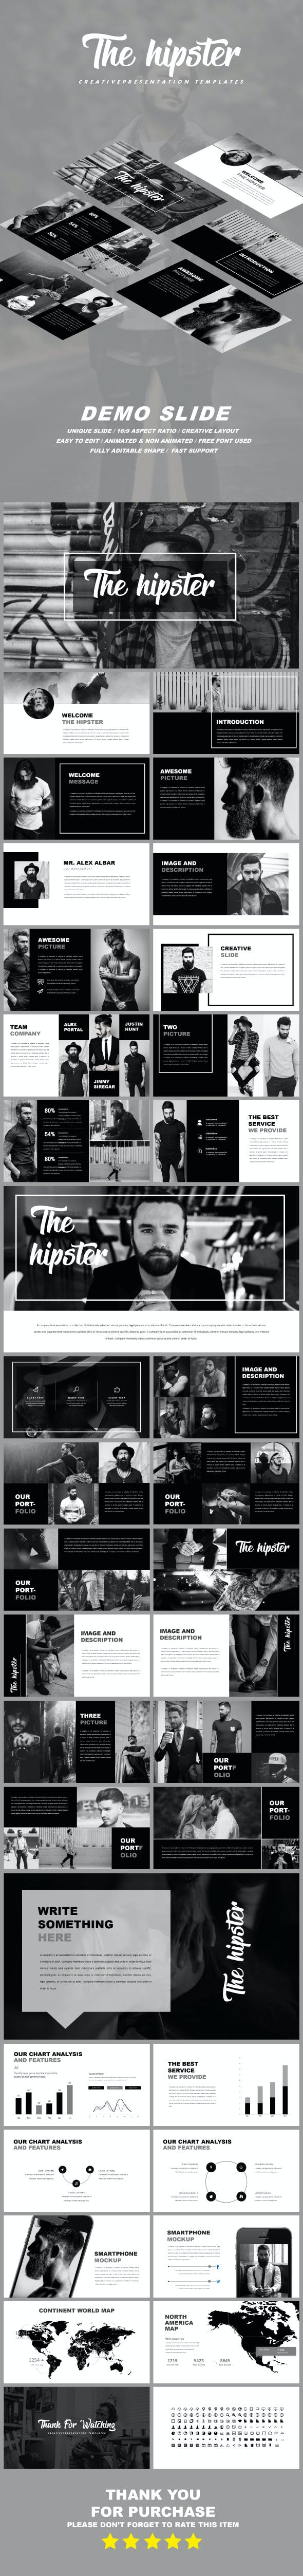 the hipster creative powerpoint templates by creatortemplate